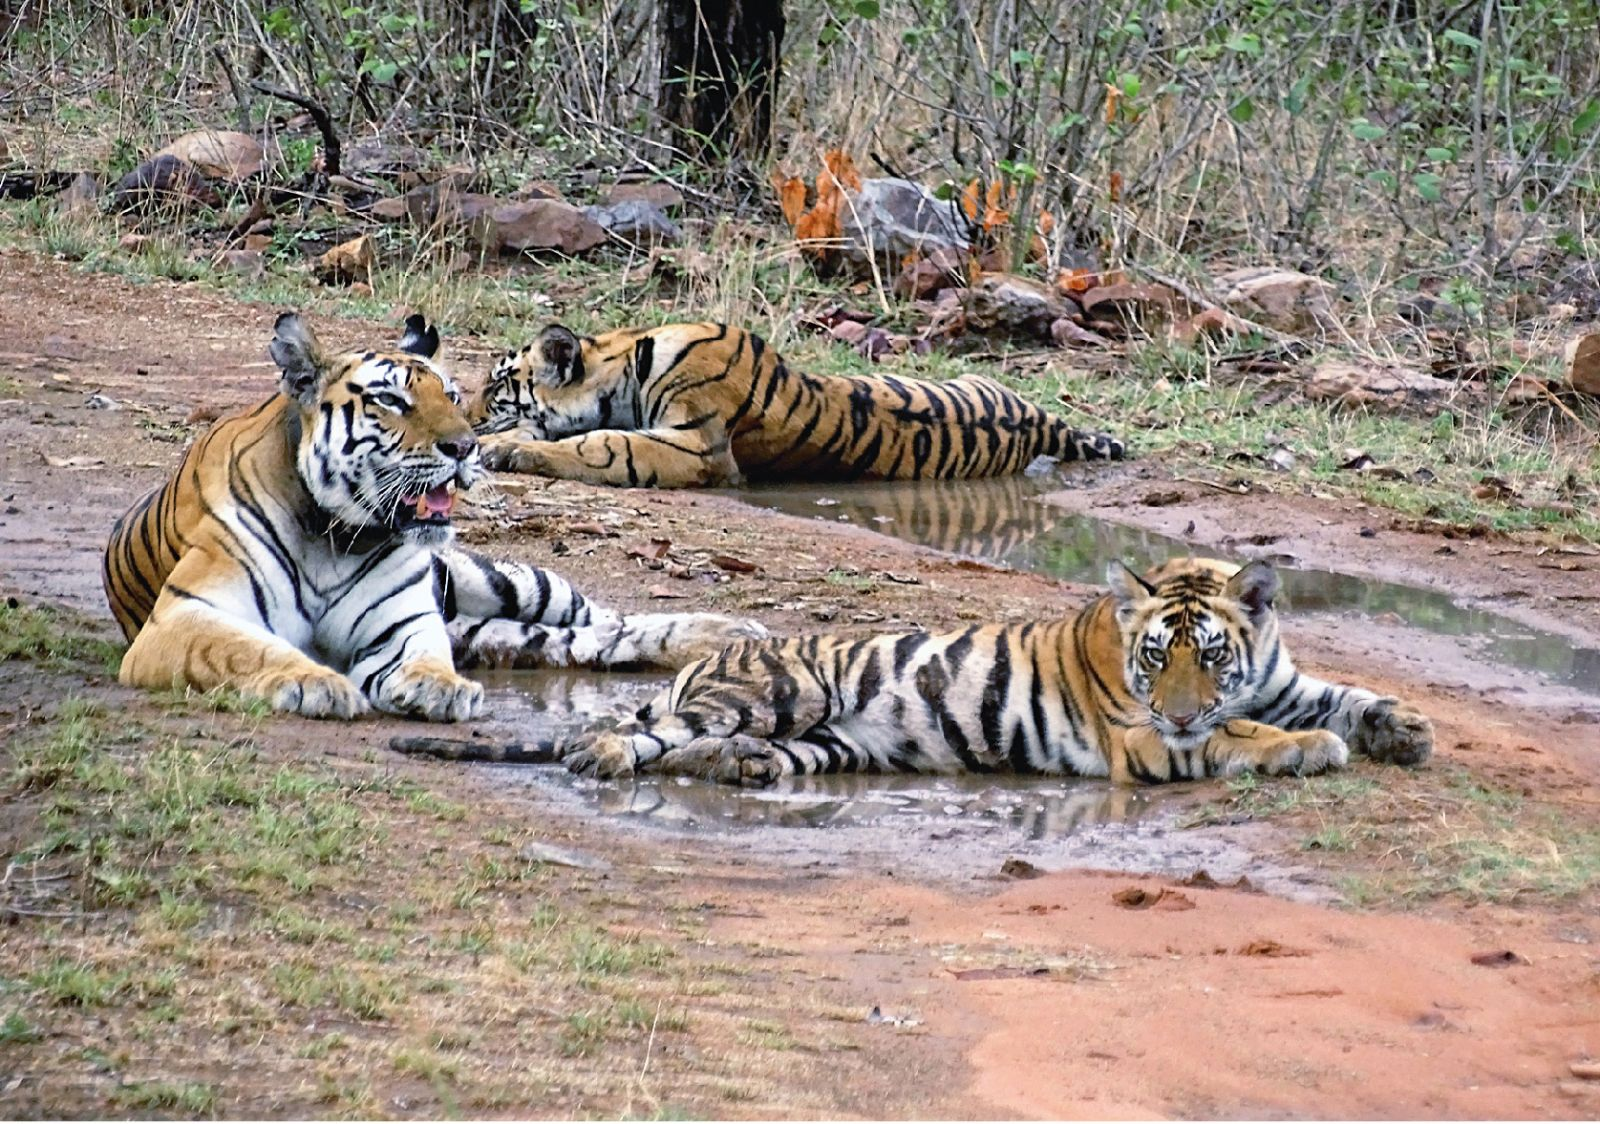 There is an urgent need to extend tiger conservation beyond the boundaries of Protected Areas, mapped at the beginning of Project Tiger. Protecting tiger corridors to enable dispersal and interbreeding for a viable gene pool diversity is vital to the survival of tigers in India.